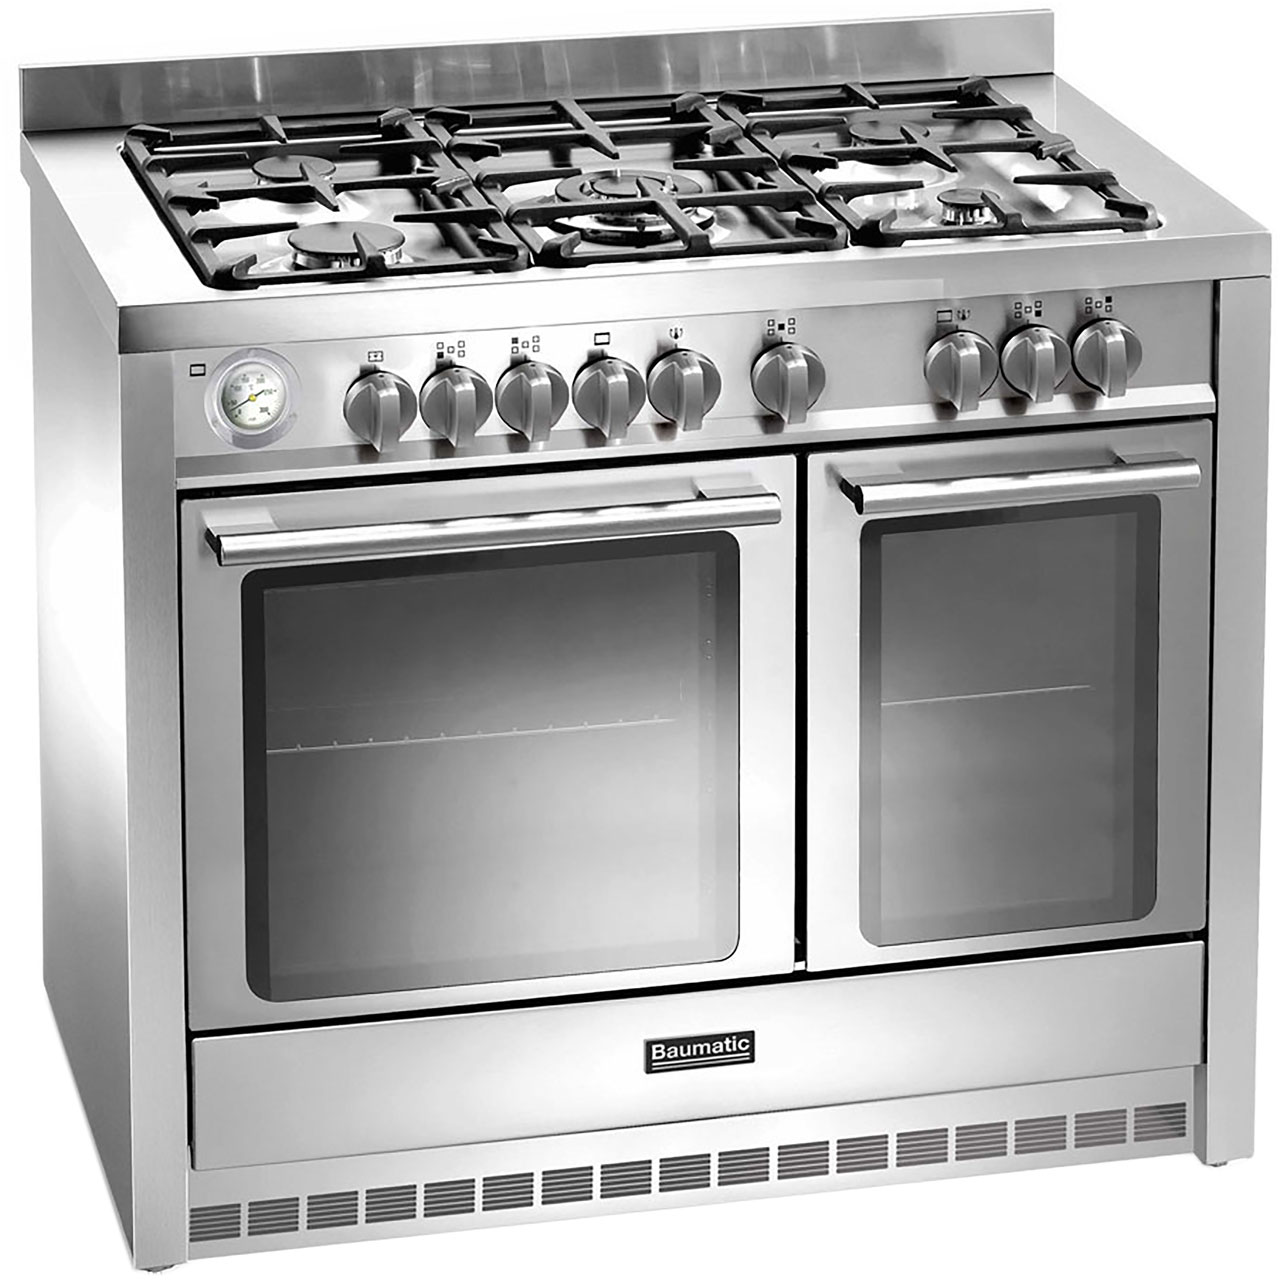 Baumatic BCD1025SS Free Standing Range Cooker in Stainless Steel